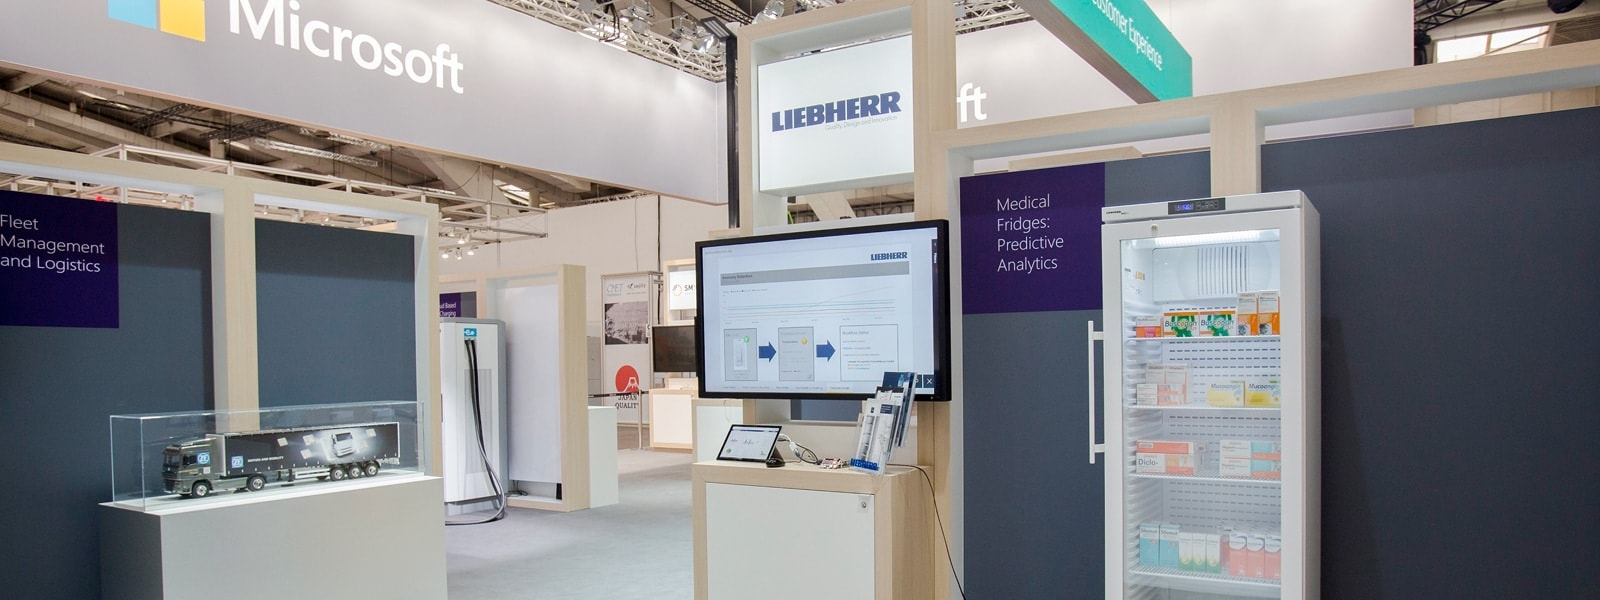 Liebherr booth at event